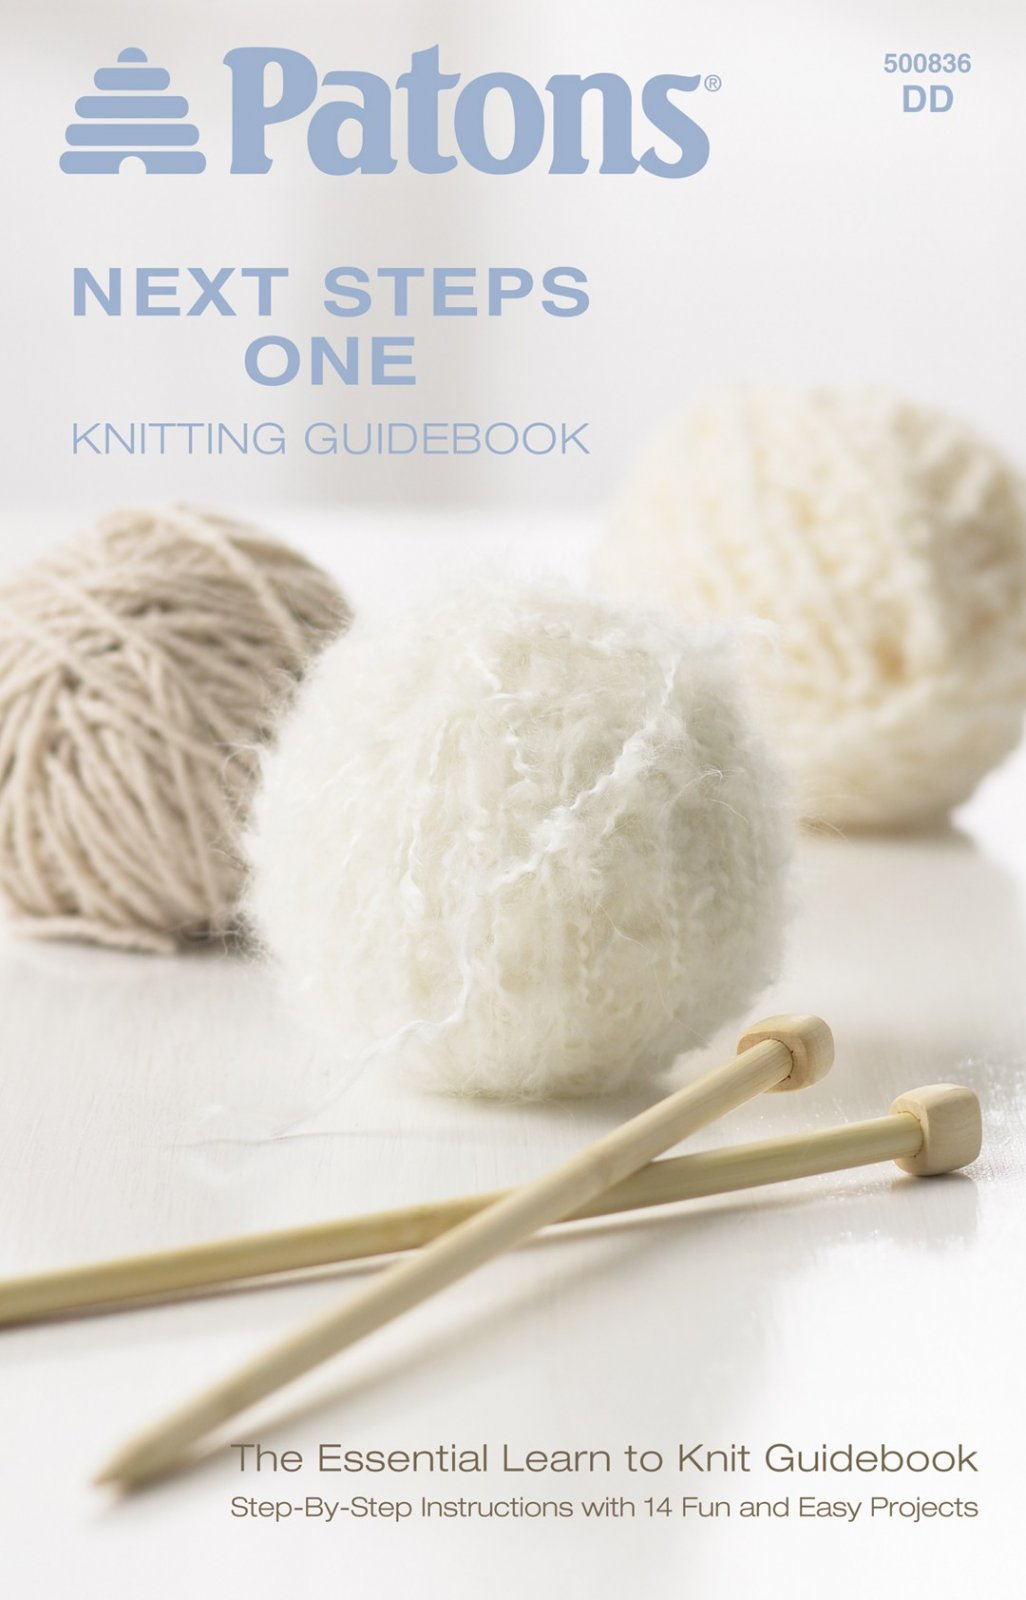 Knitting Guidebook - Patons Next Steps 1